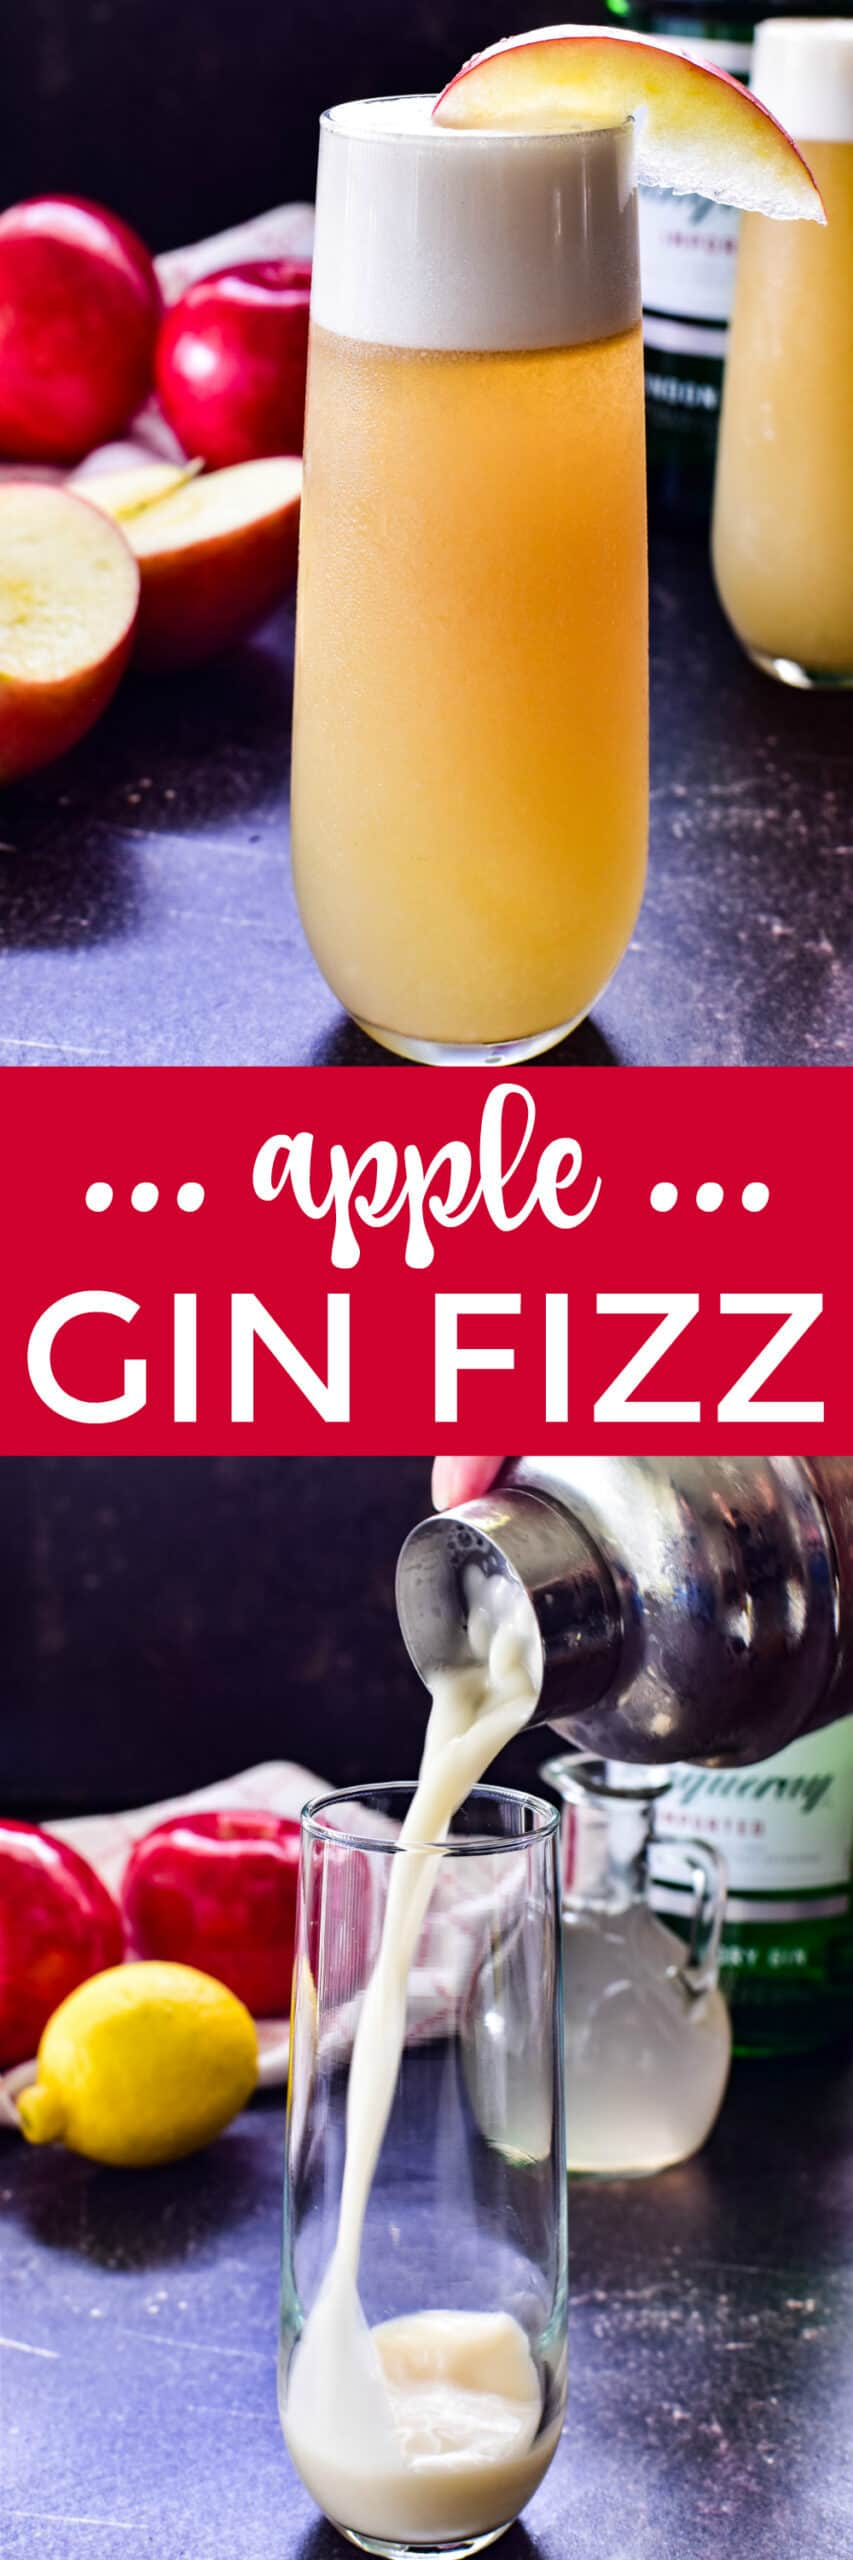 Collage image of Apple Gin Fizz